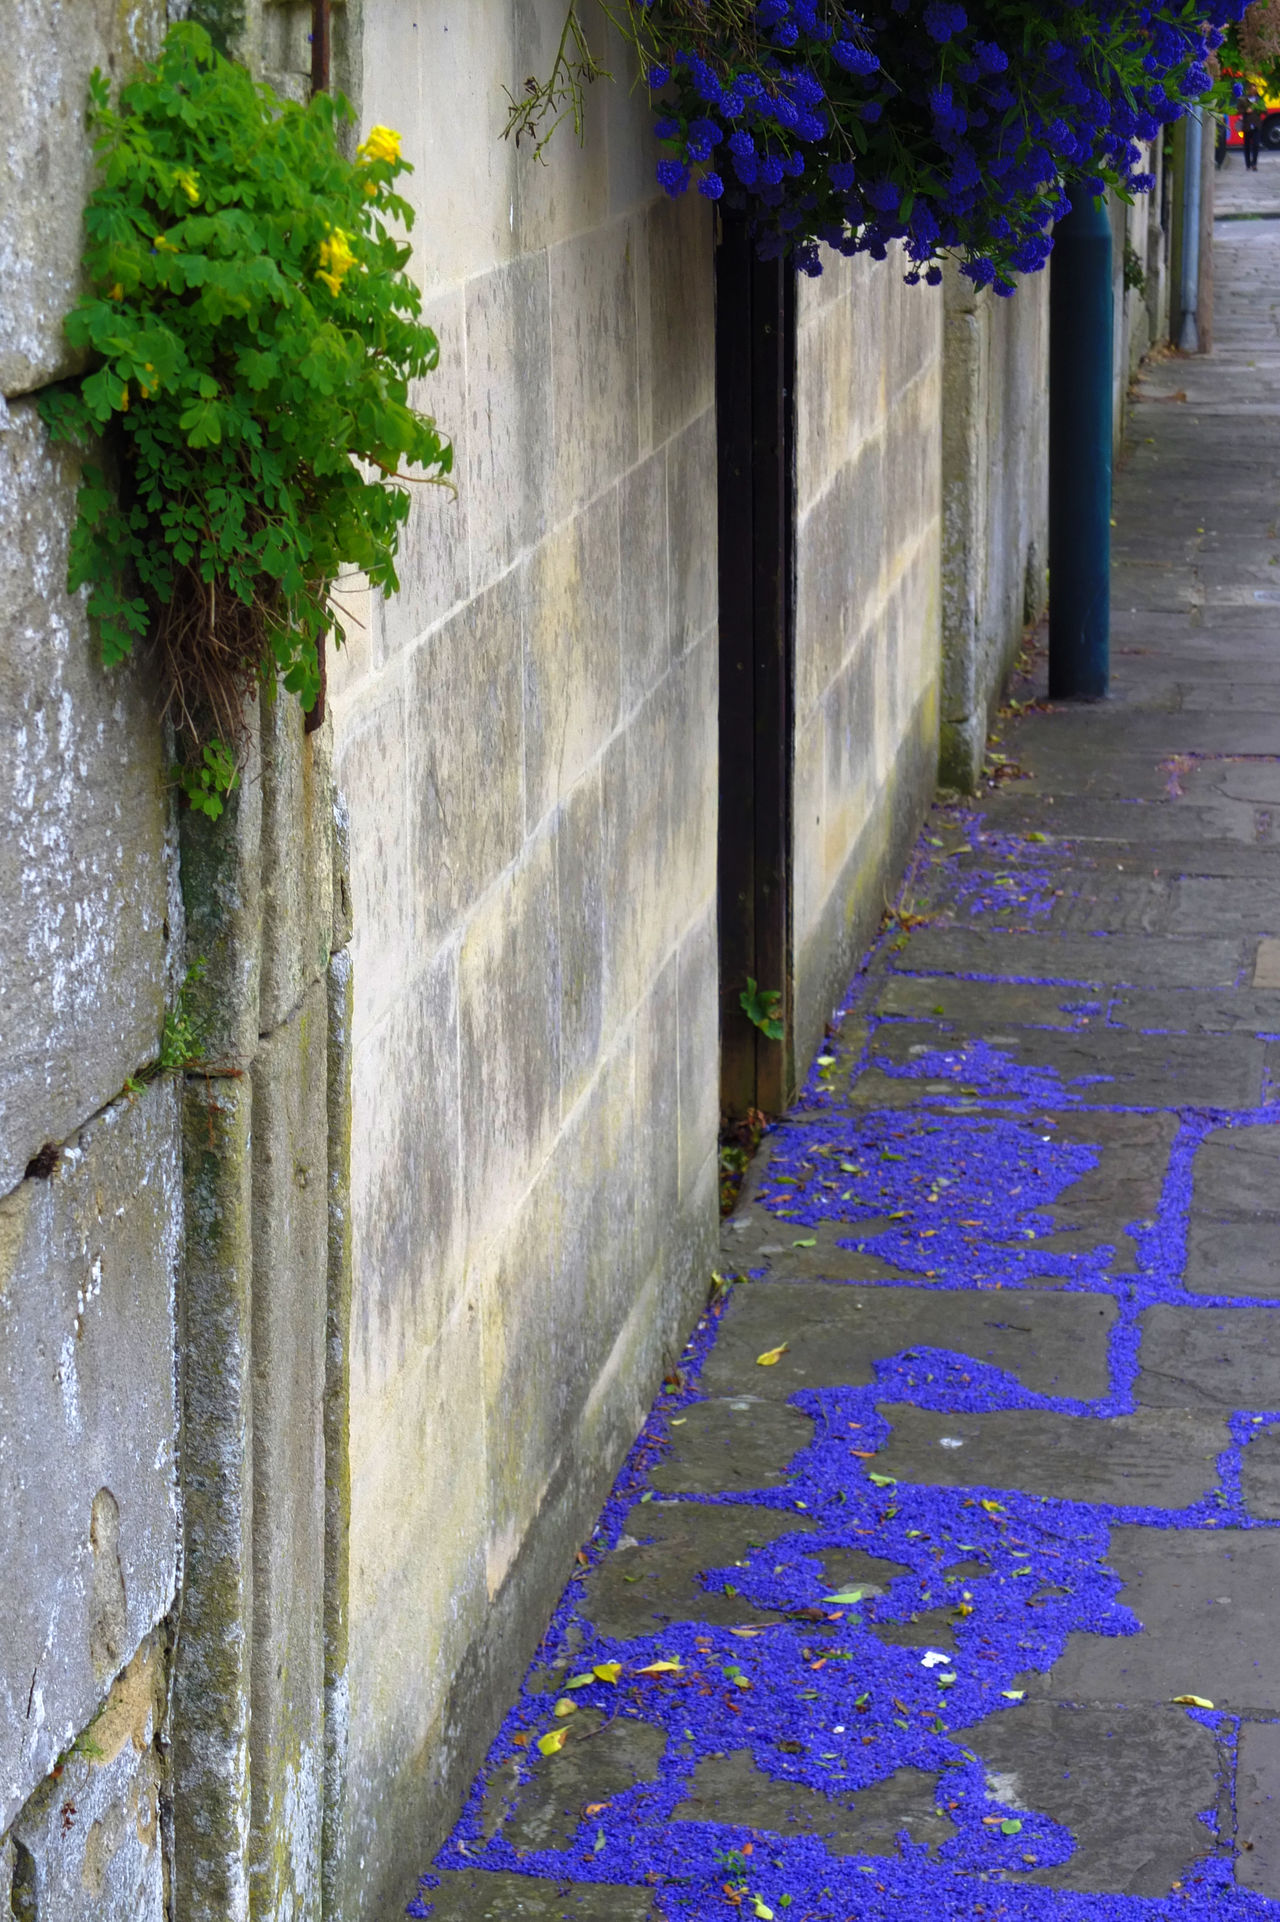 Architecture Beauty In Nature Blue Flowers Built Structure No People Paving Stone Petals Street Urban Landscape